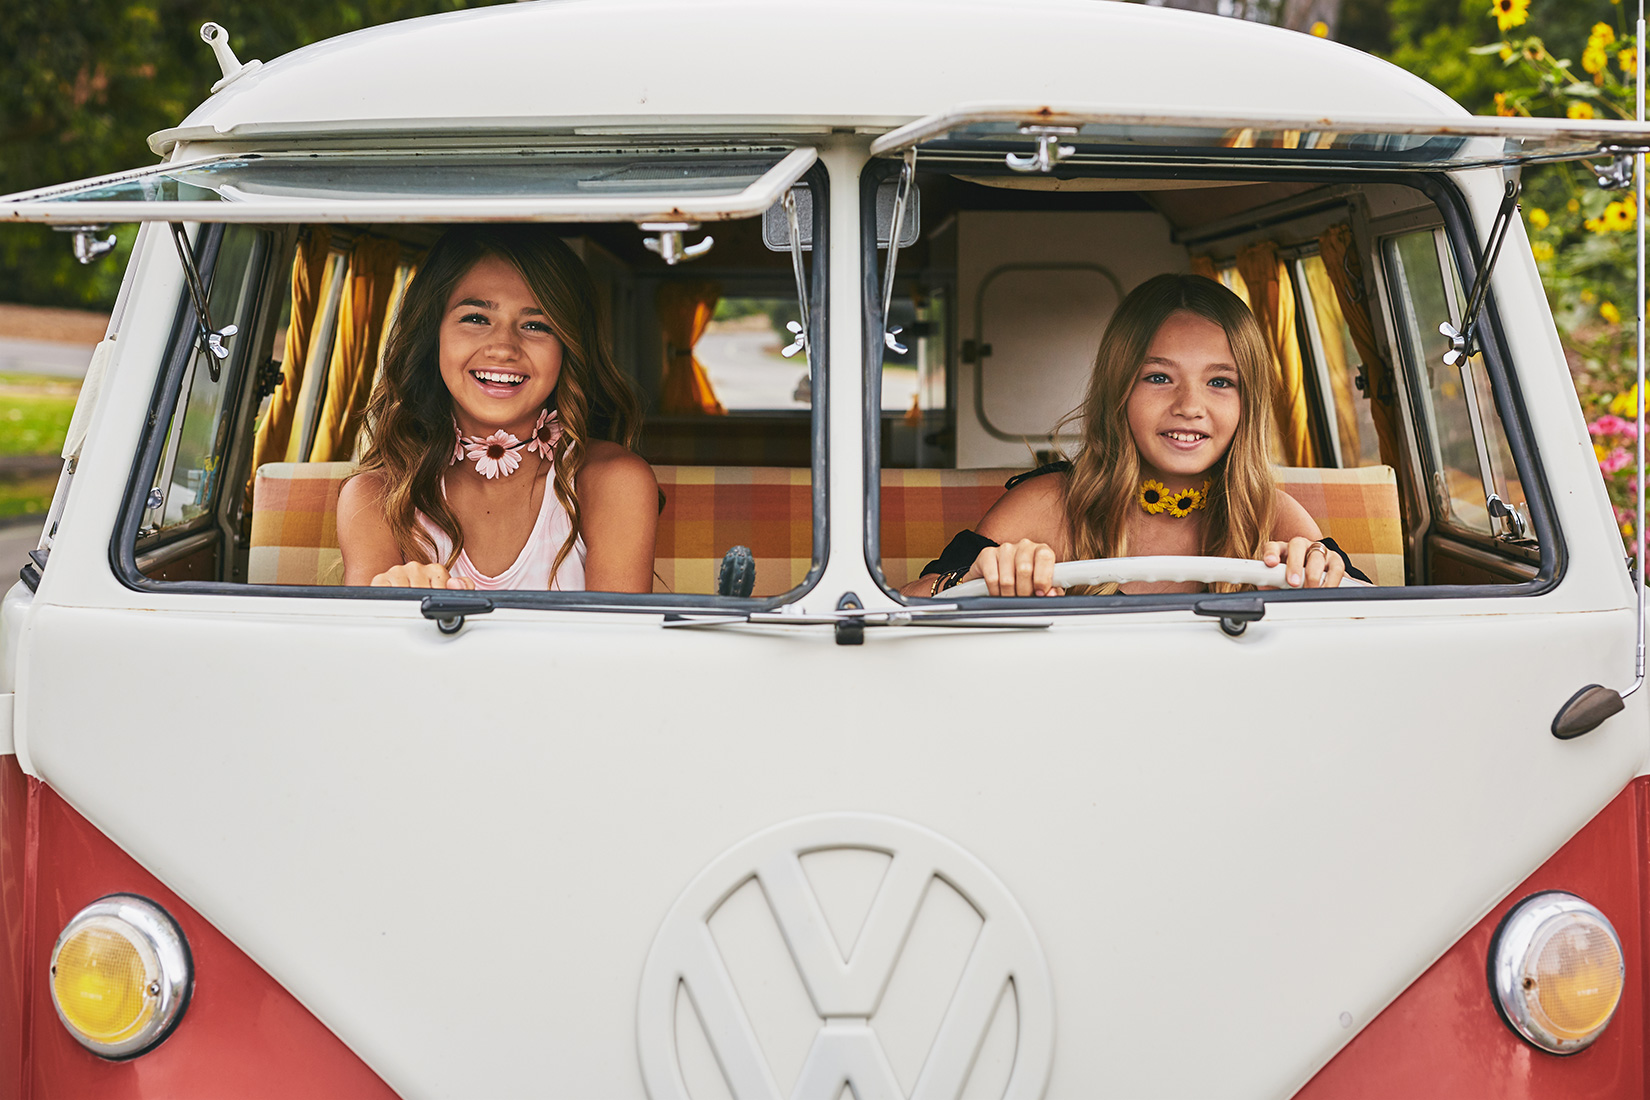 Teen Apparel Lifestyle VW Bus